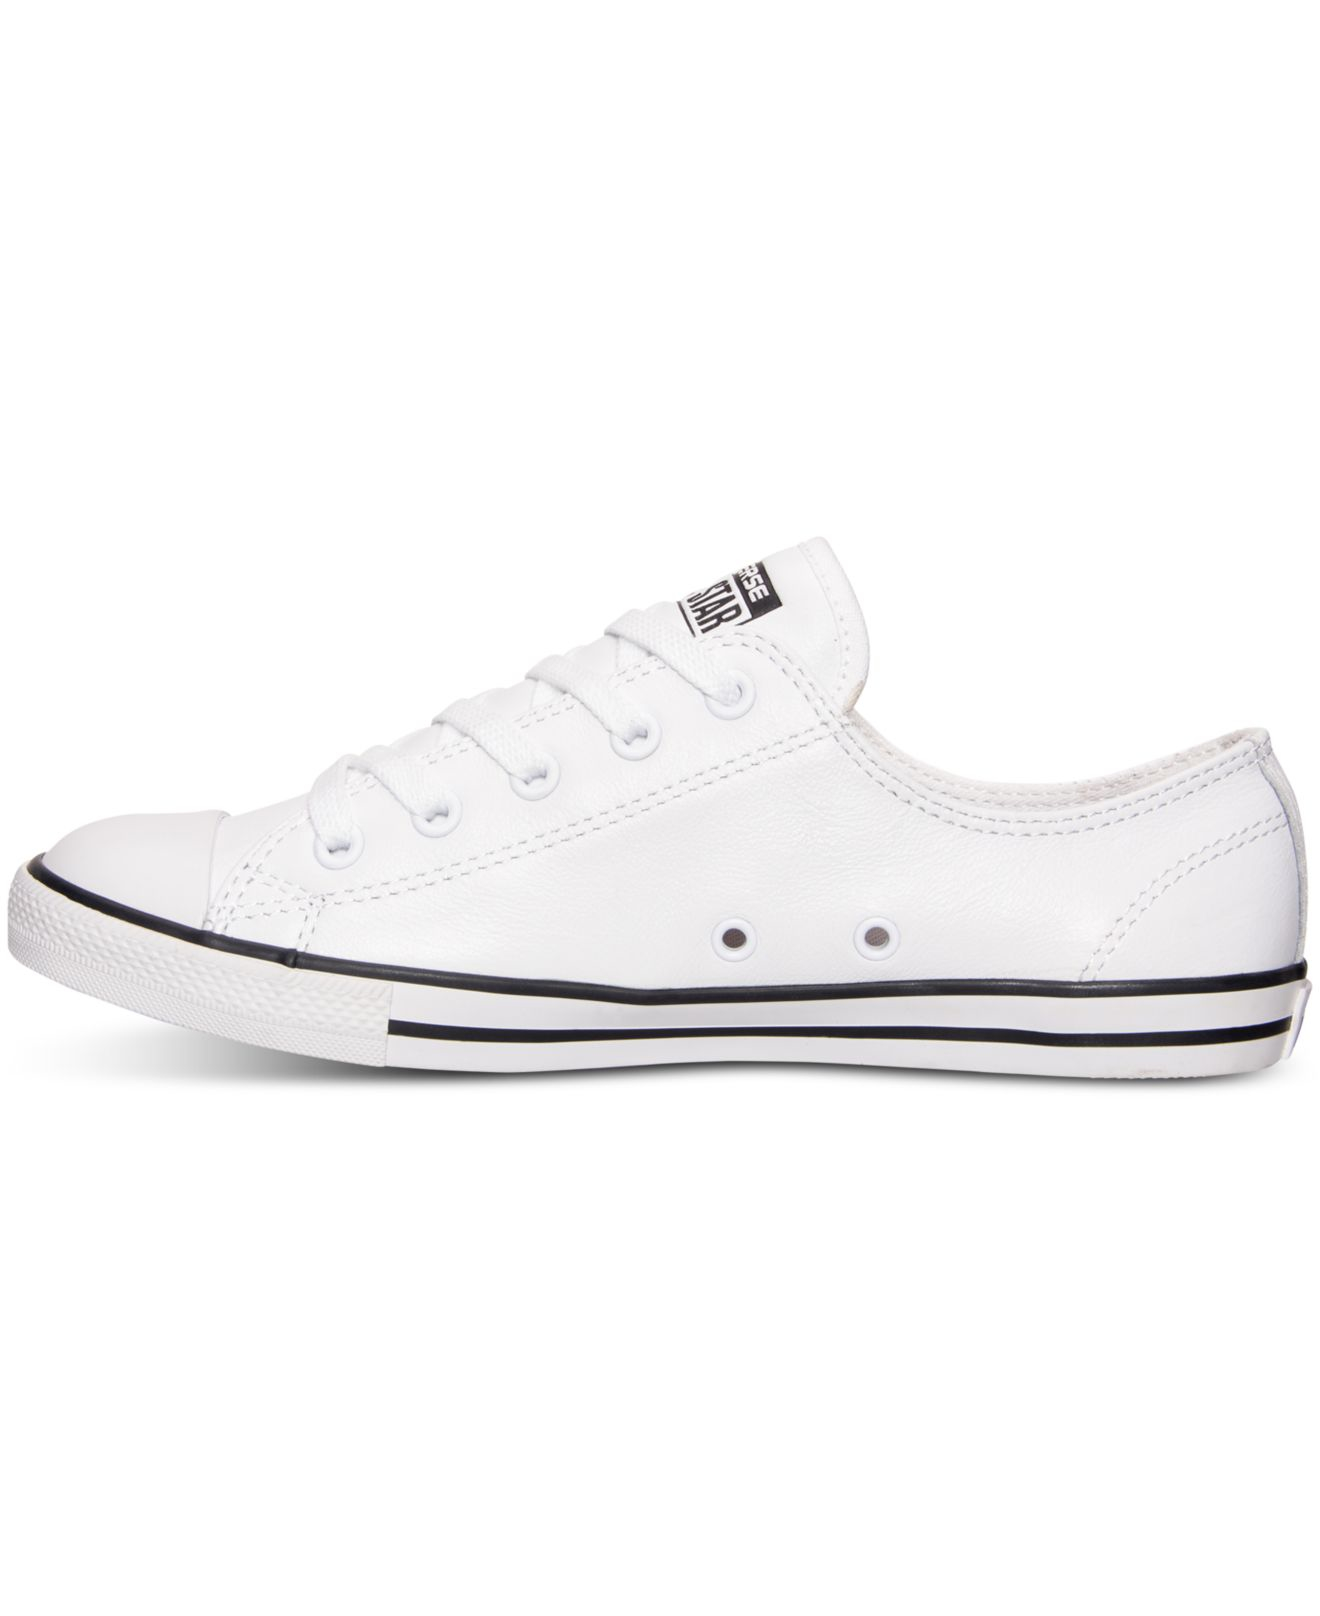 Womens Converse Dainty White Leather offerzone.co.uk 8c04cdac1